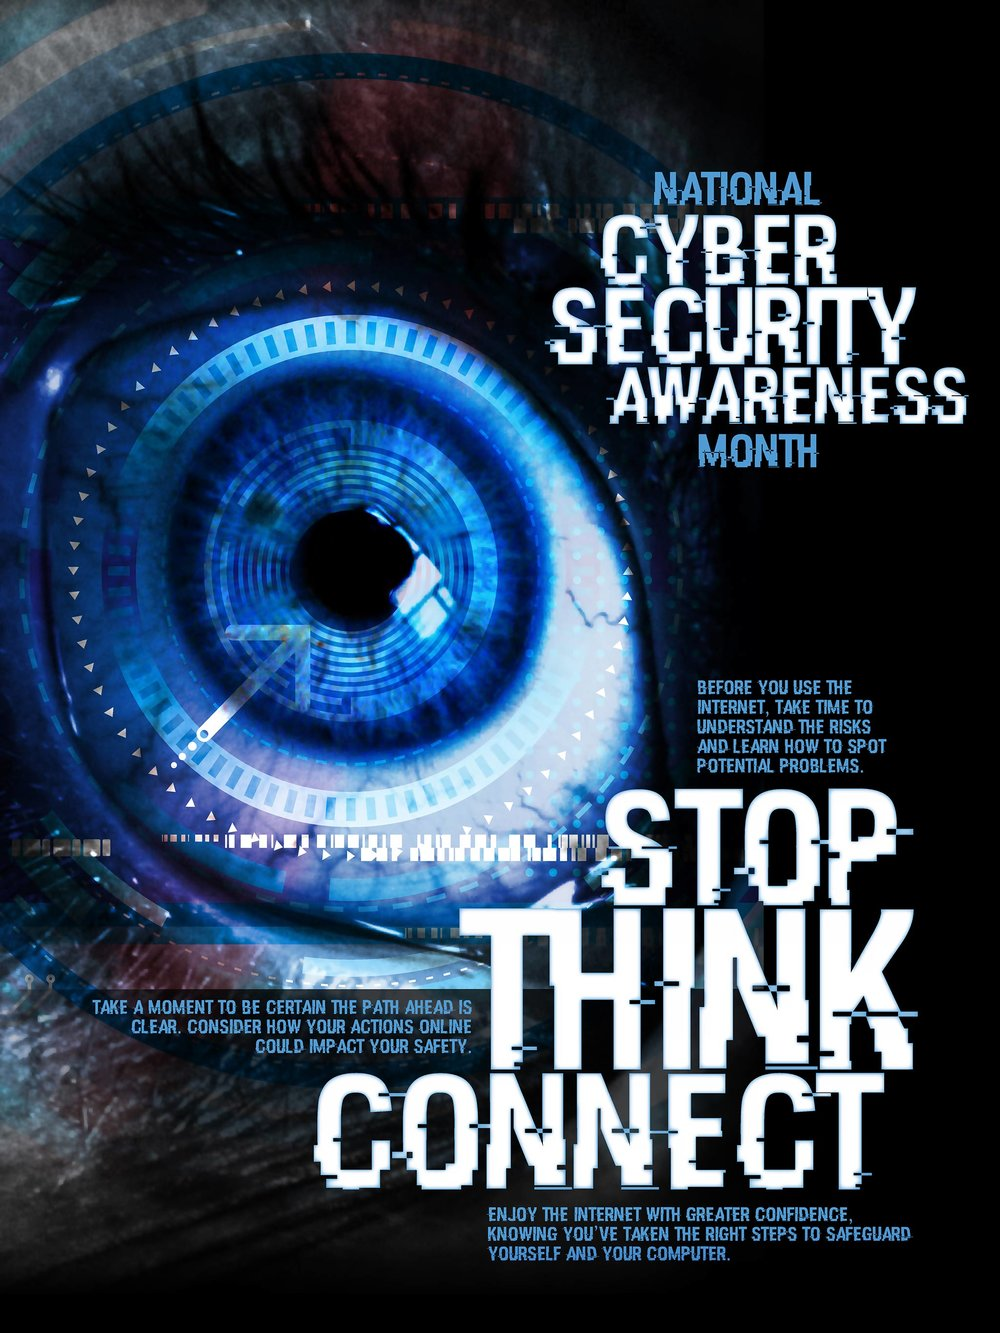 NationalCyberSecurityAwarenessMonth2015_18x24_Web.jpg